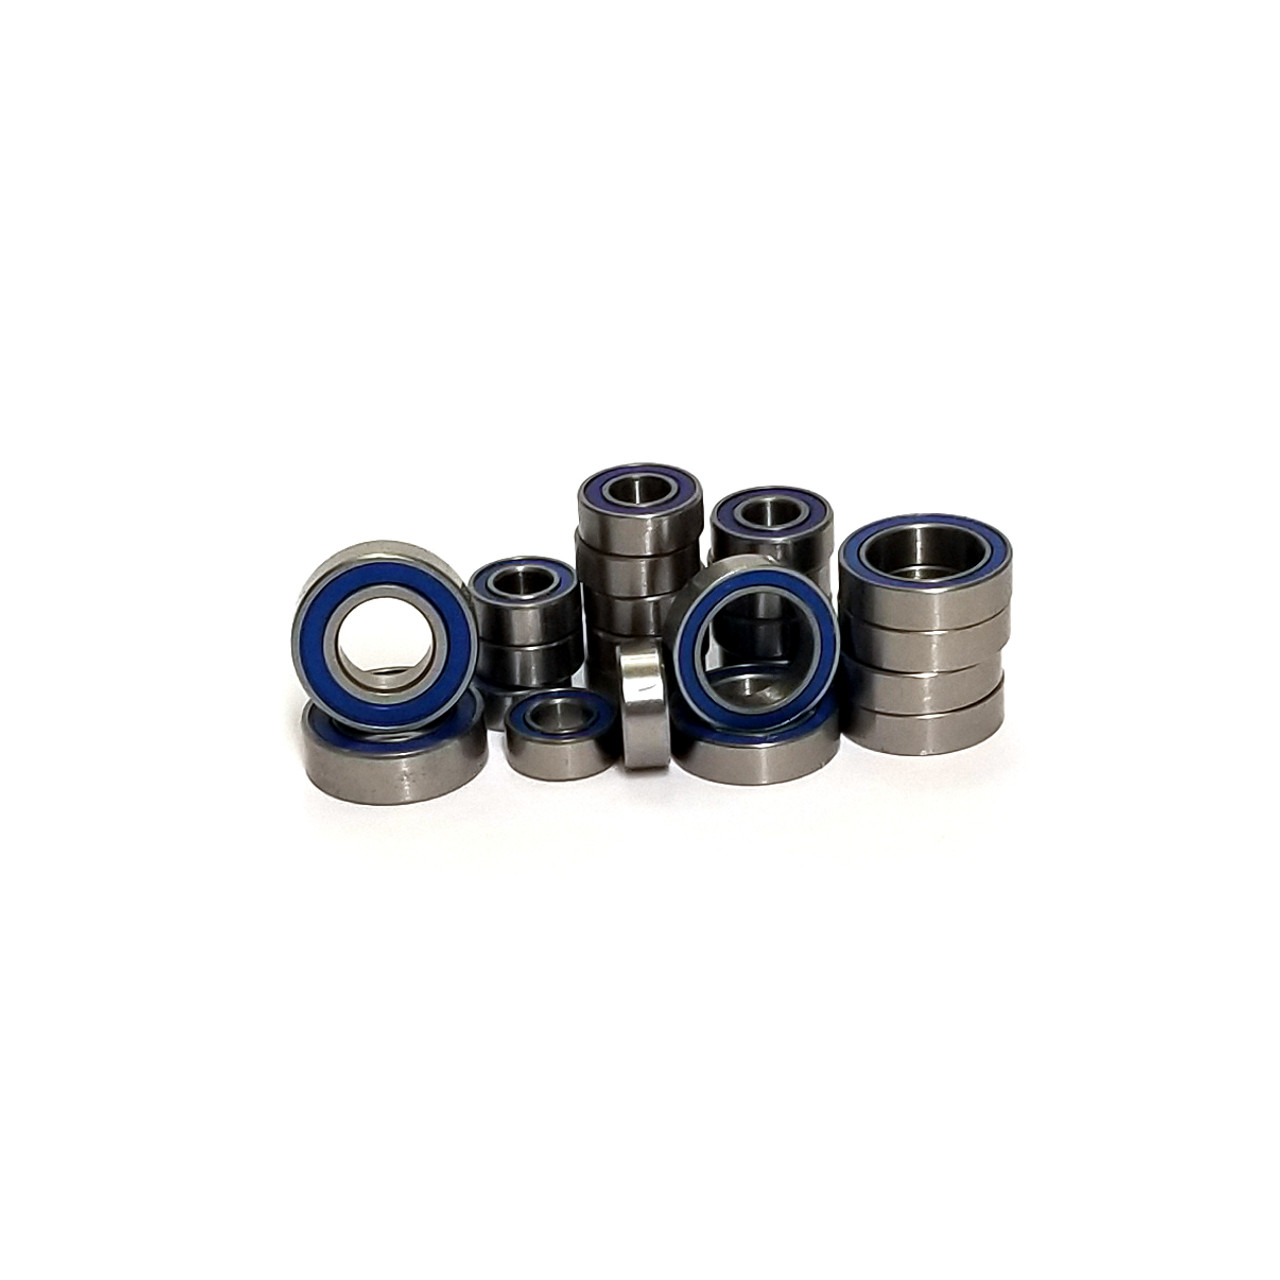 Full blue rubber sealed bearing kit for the Axial AX10 trucks!